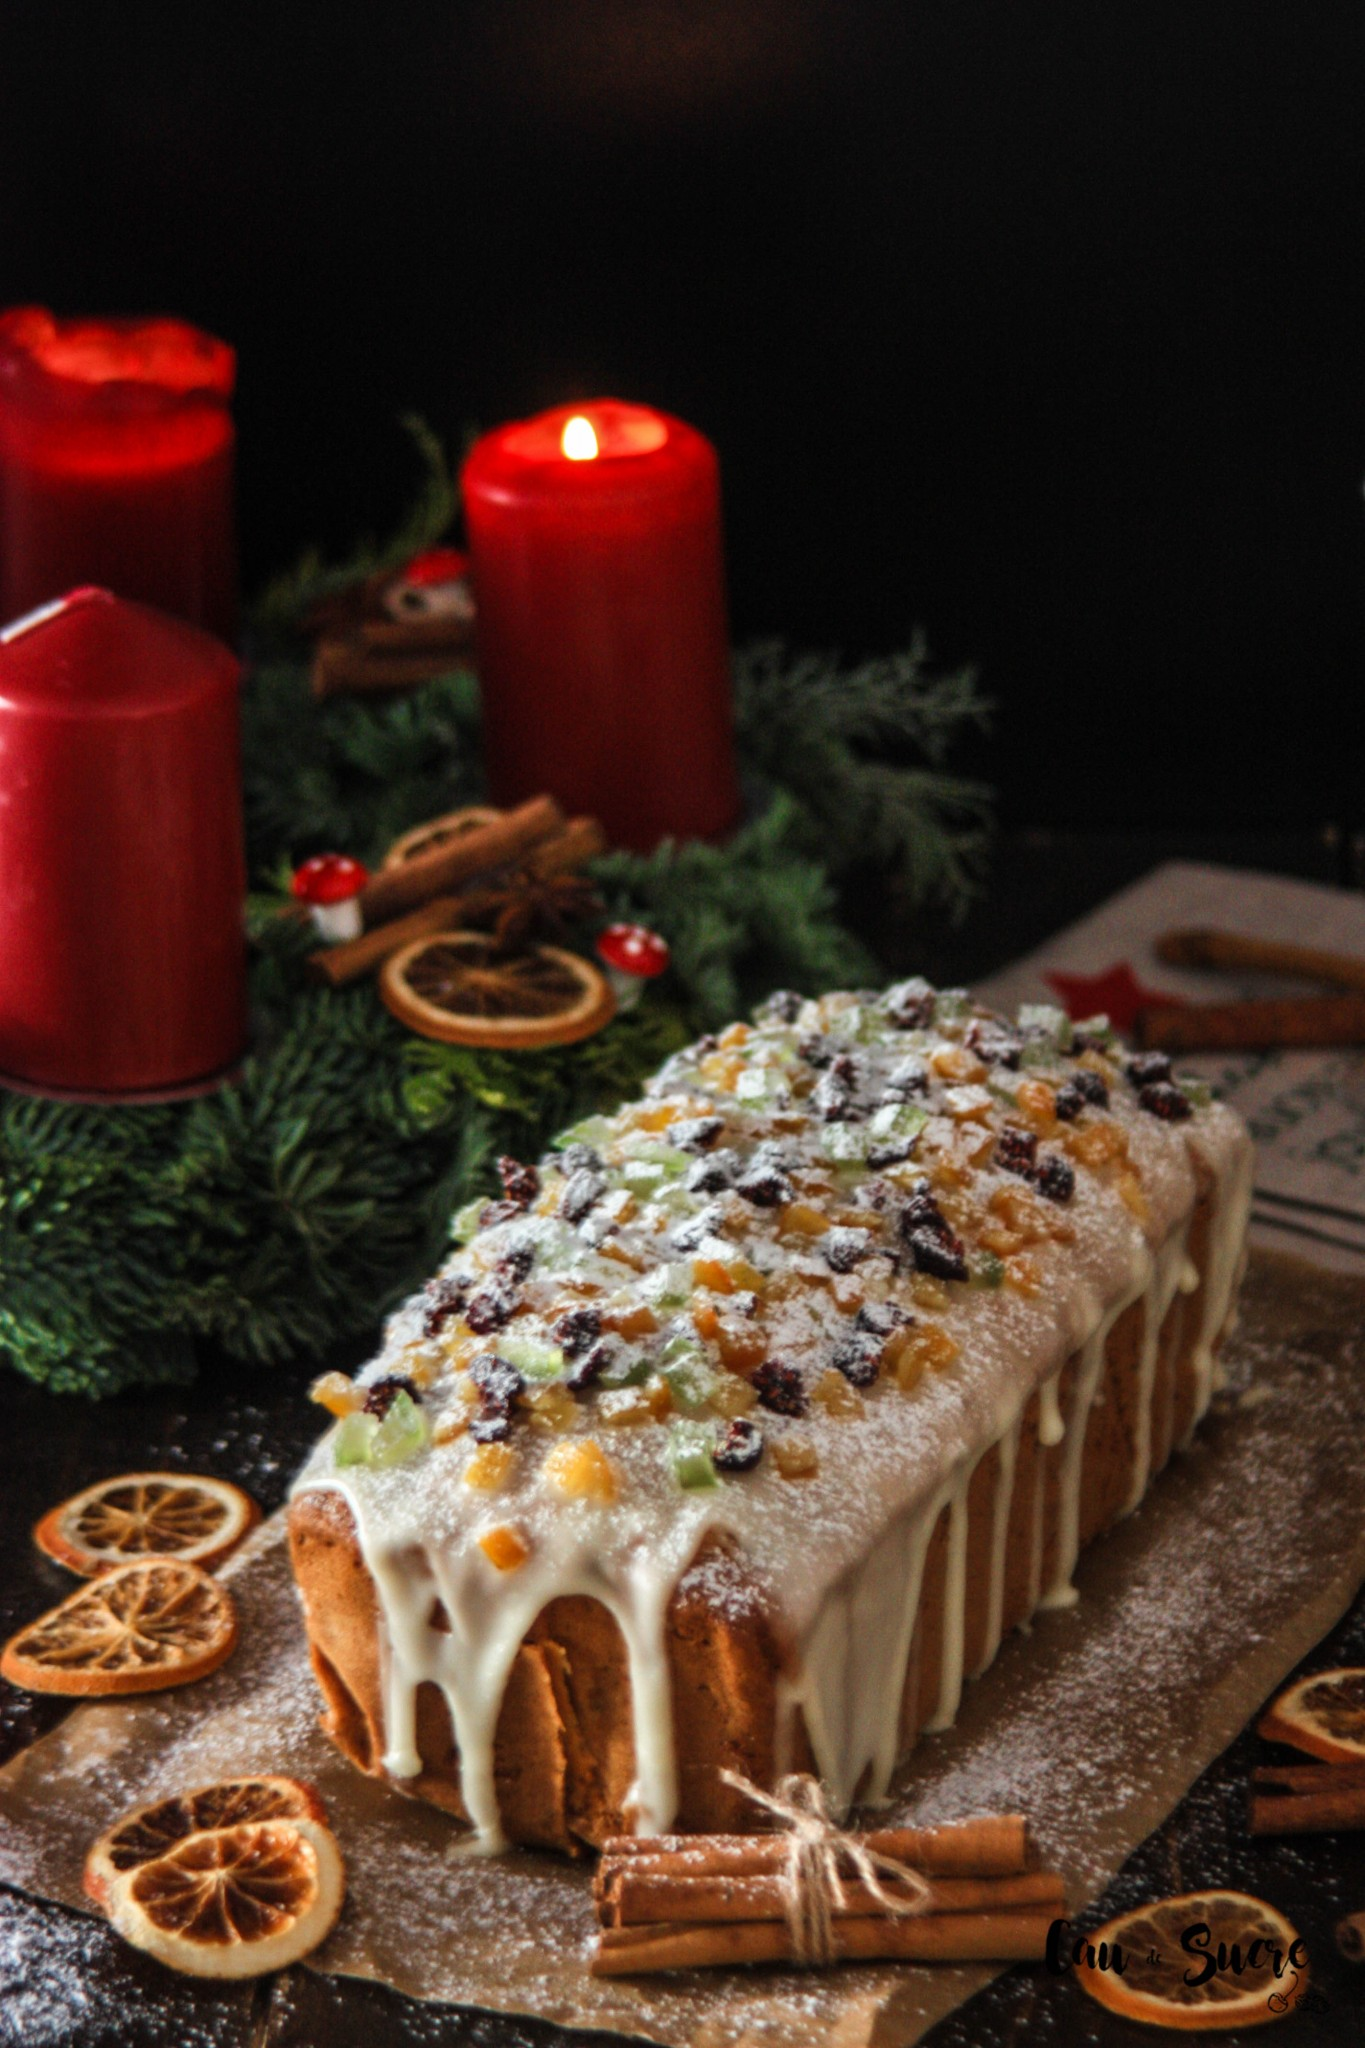 Fruit Pound Cake with Orange glaze Cau de sucre